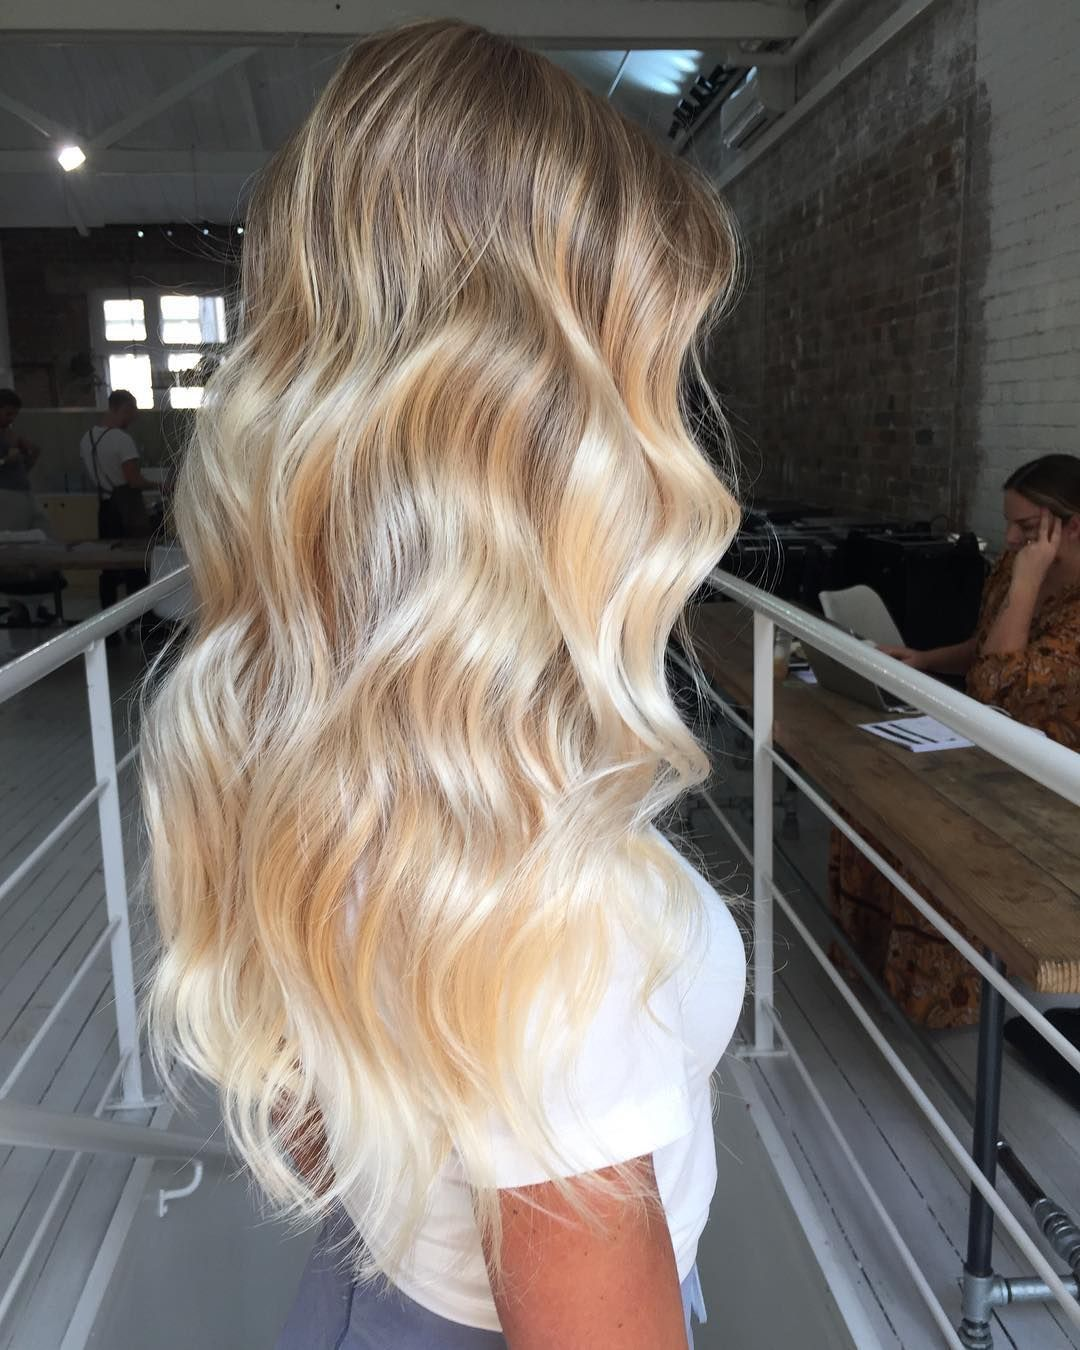 "Joel Wallbank on Instagram: ""Fresh creamy locks just in time for summer 😍 the most seamless balayage blend created with @goldwellaus @redkenaustralia and @olaplexau to…"""